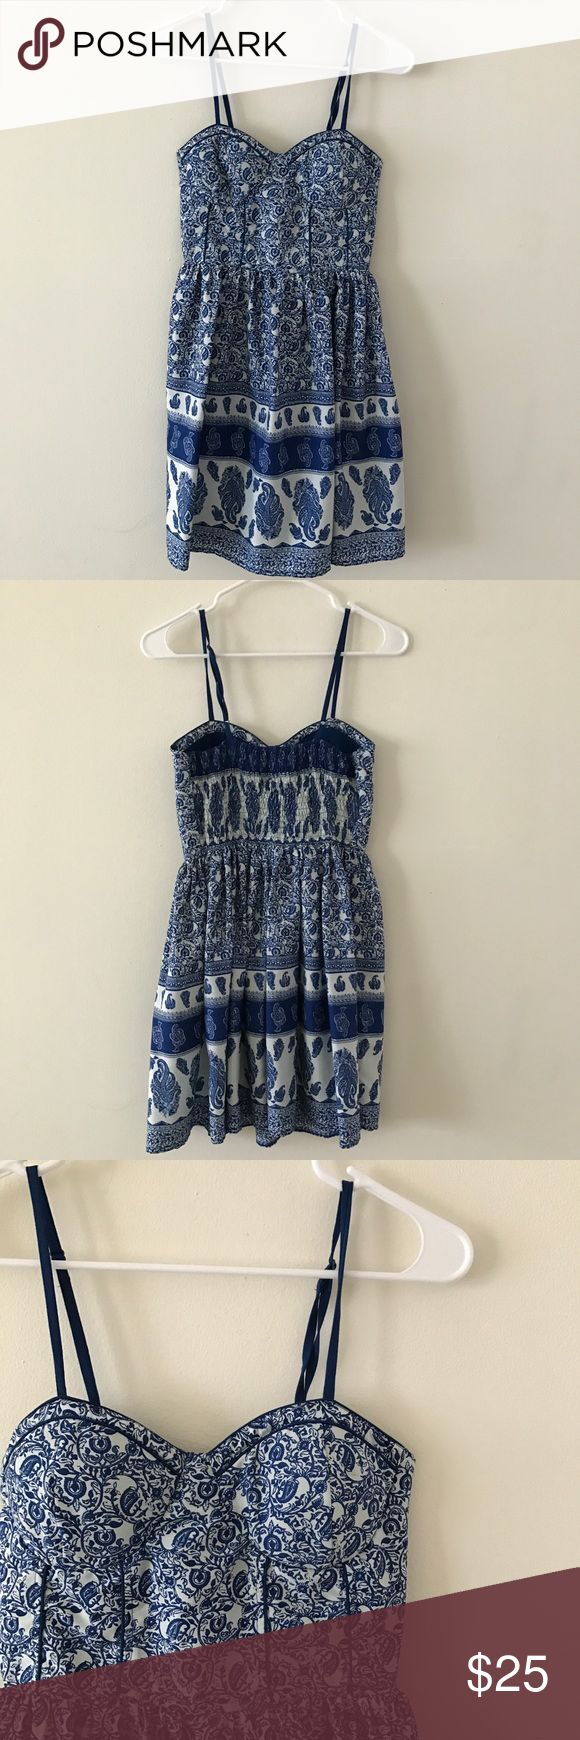 American Rag • Blue and White Summer Dress American Rag • Obsessed with this American Rag dress. Blue and white patterns. Adjustable straps. Padded chest. Lining underneath. Awesome condition.   🌸 No trades. 15% off bundles of at least 2 items. 🌸 American Rag Dresses Mini